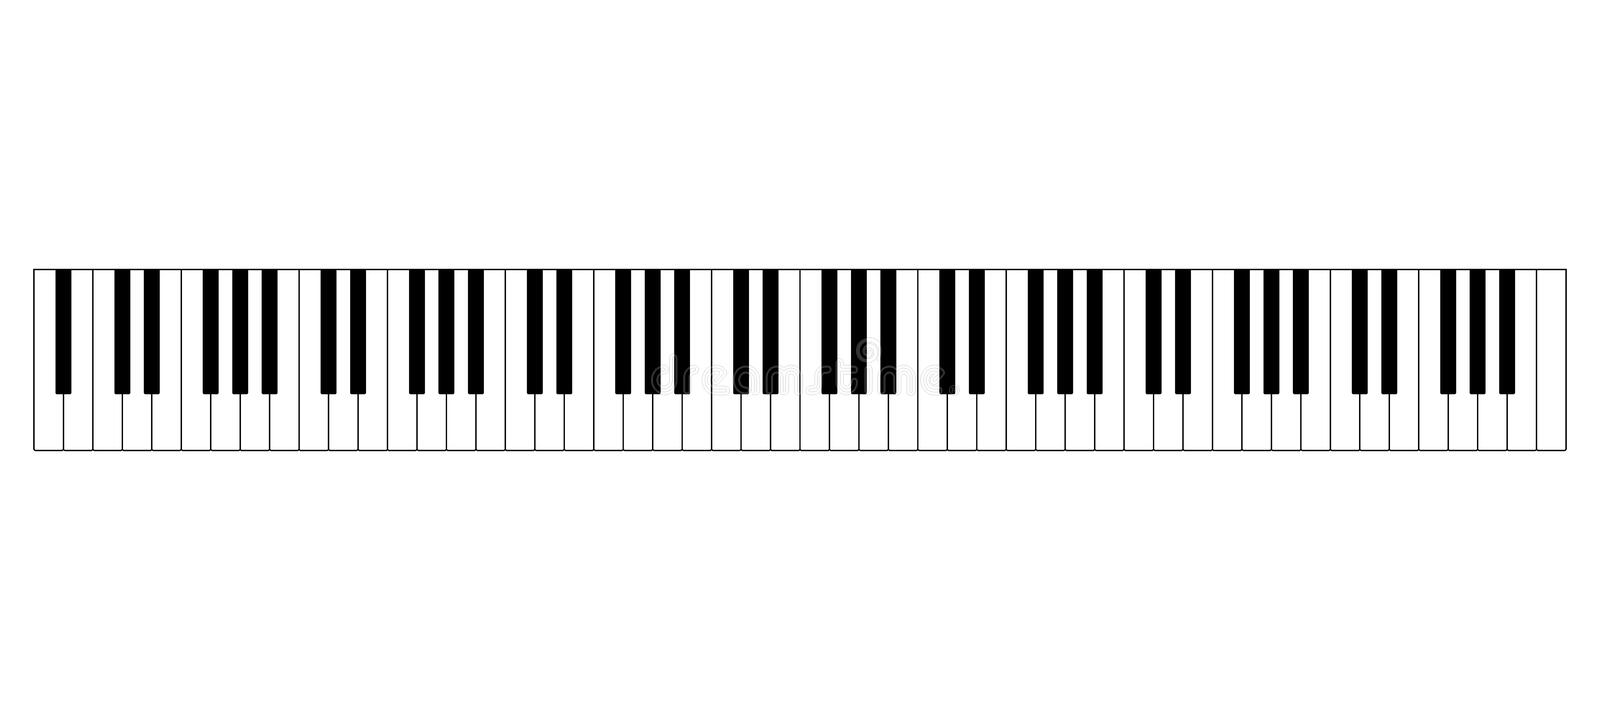 Grand piano keyboard layout. With 88 keys. 52 white and 36 black keys, 7 full octaves. Set of levers on a musical instrument for playing the twelve notes of royalty free illustration